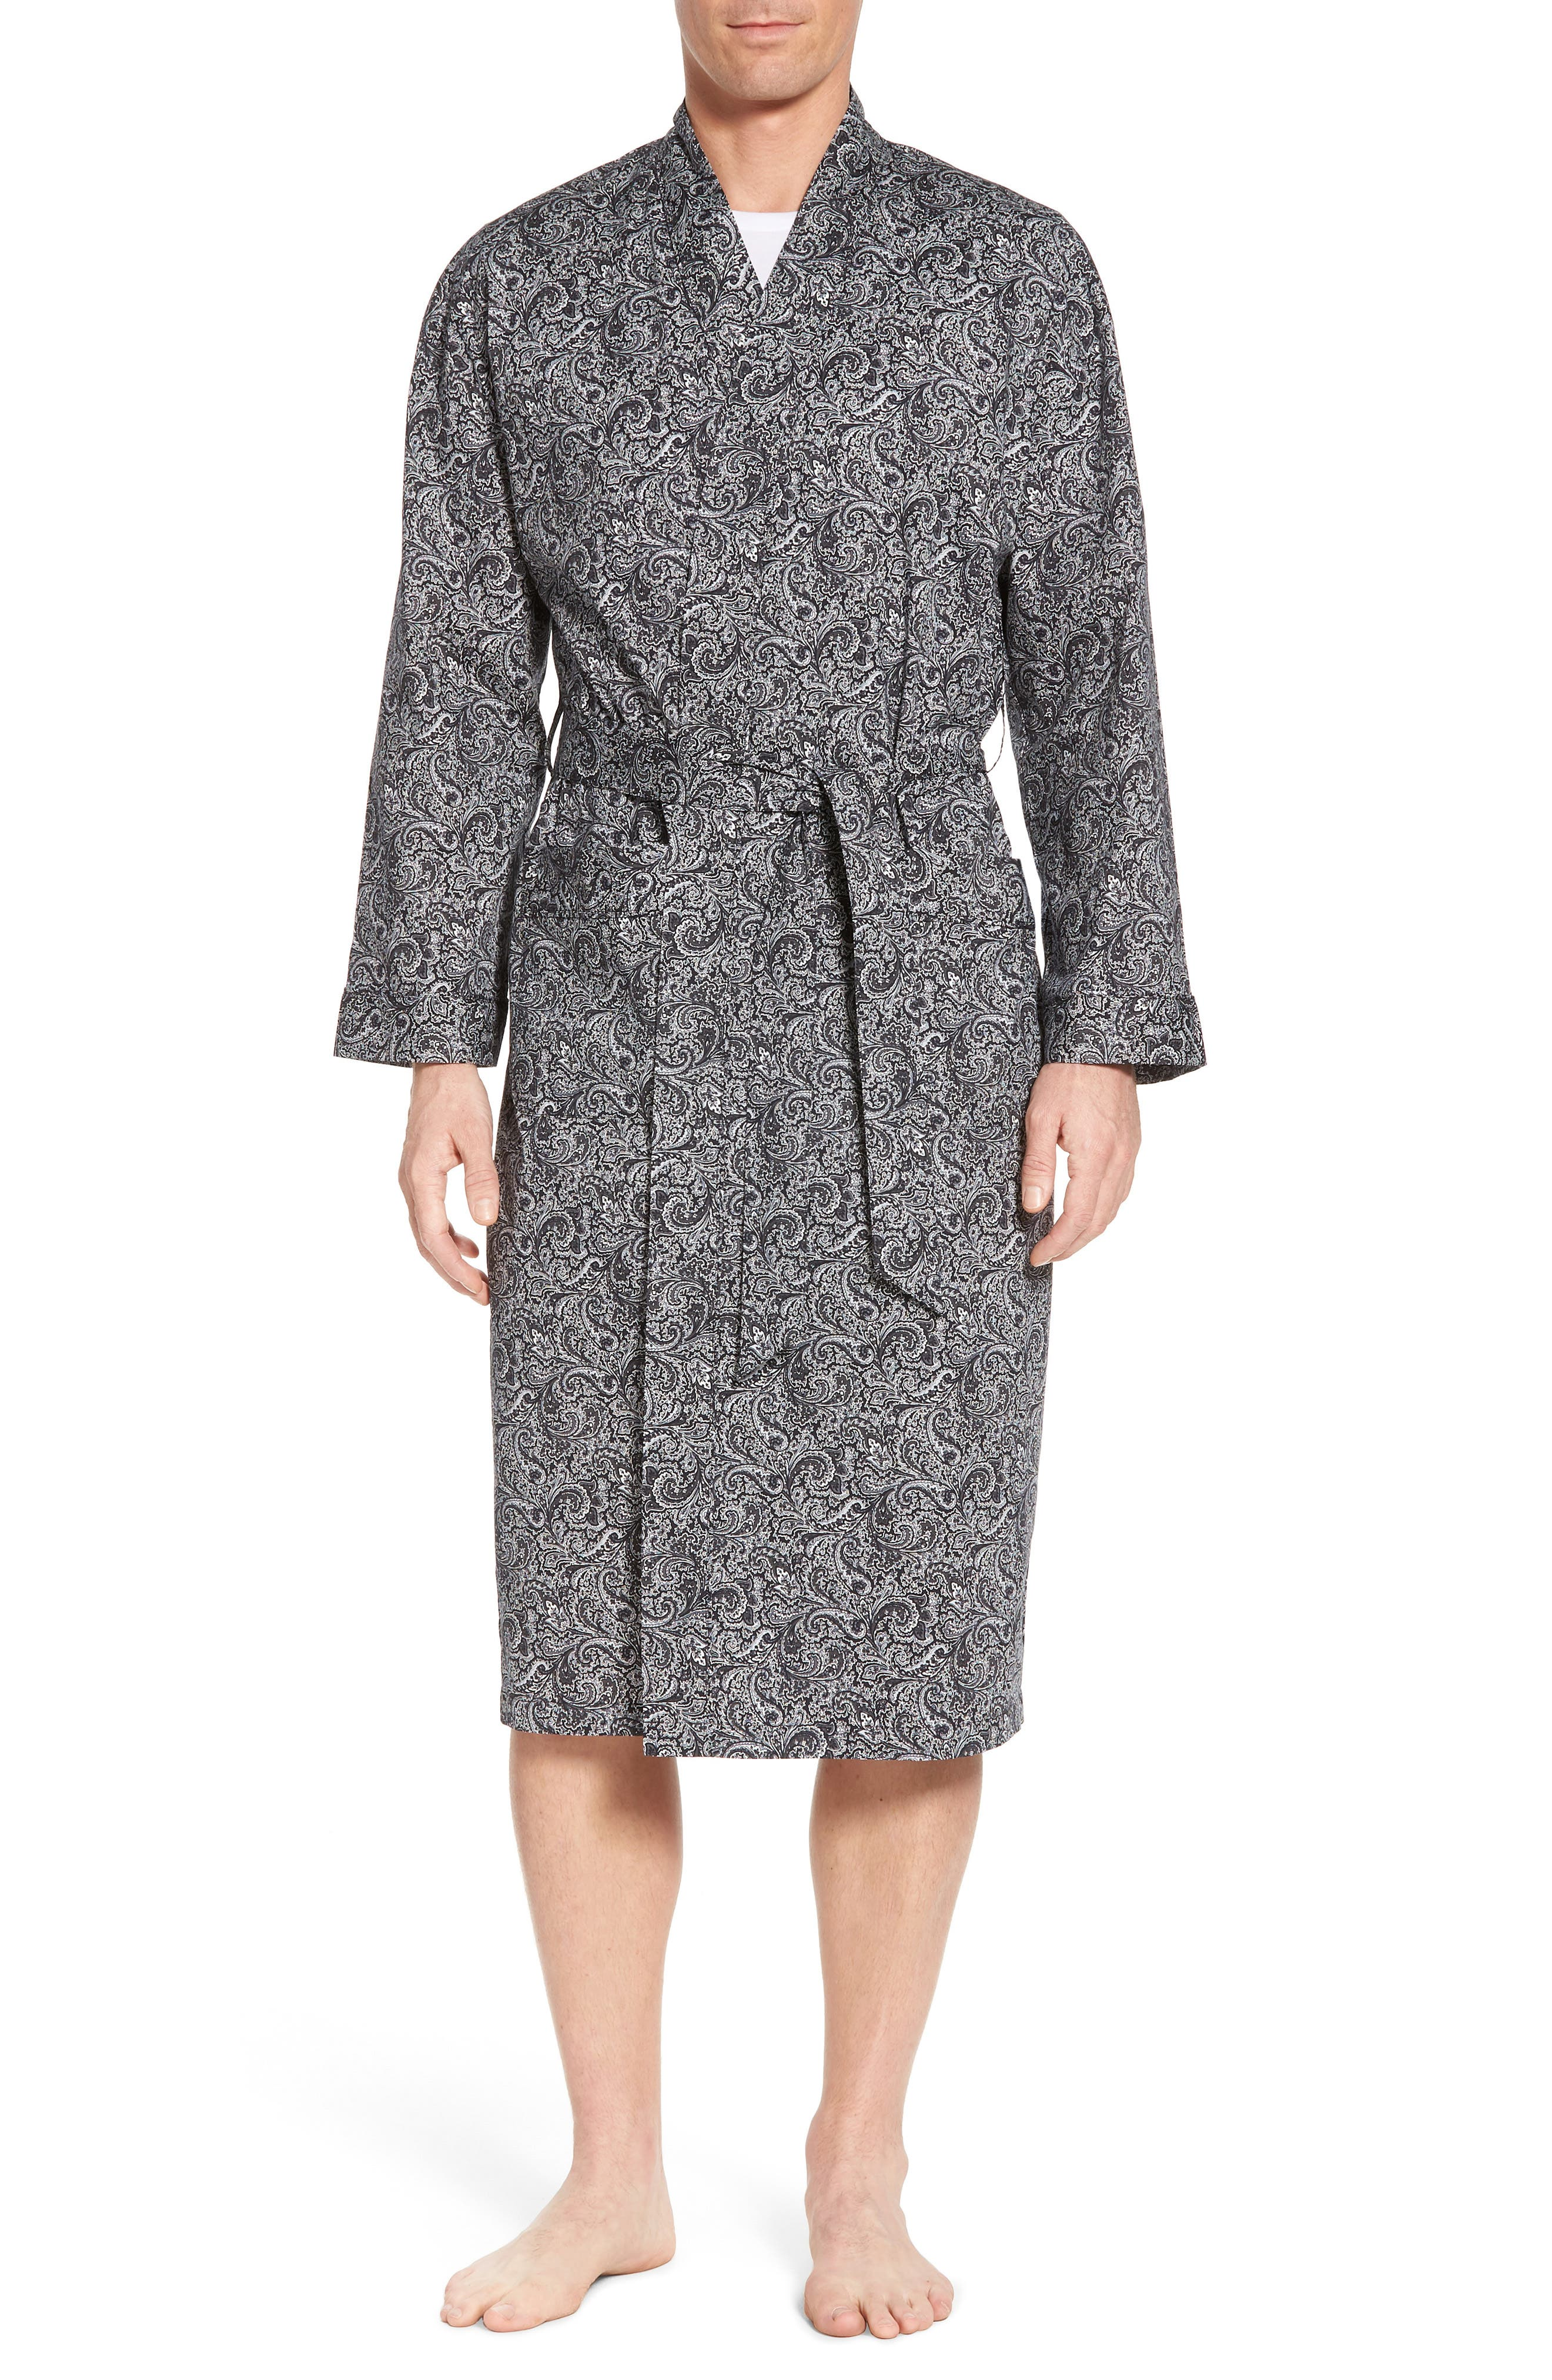 Starling Robe,                         Main,                         color, Black Paisley